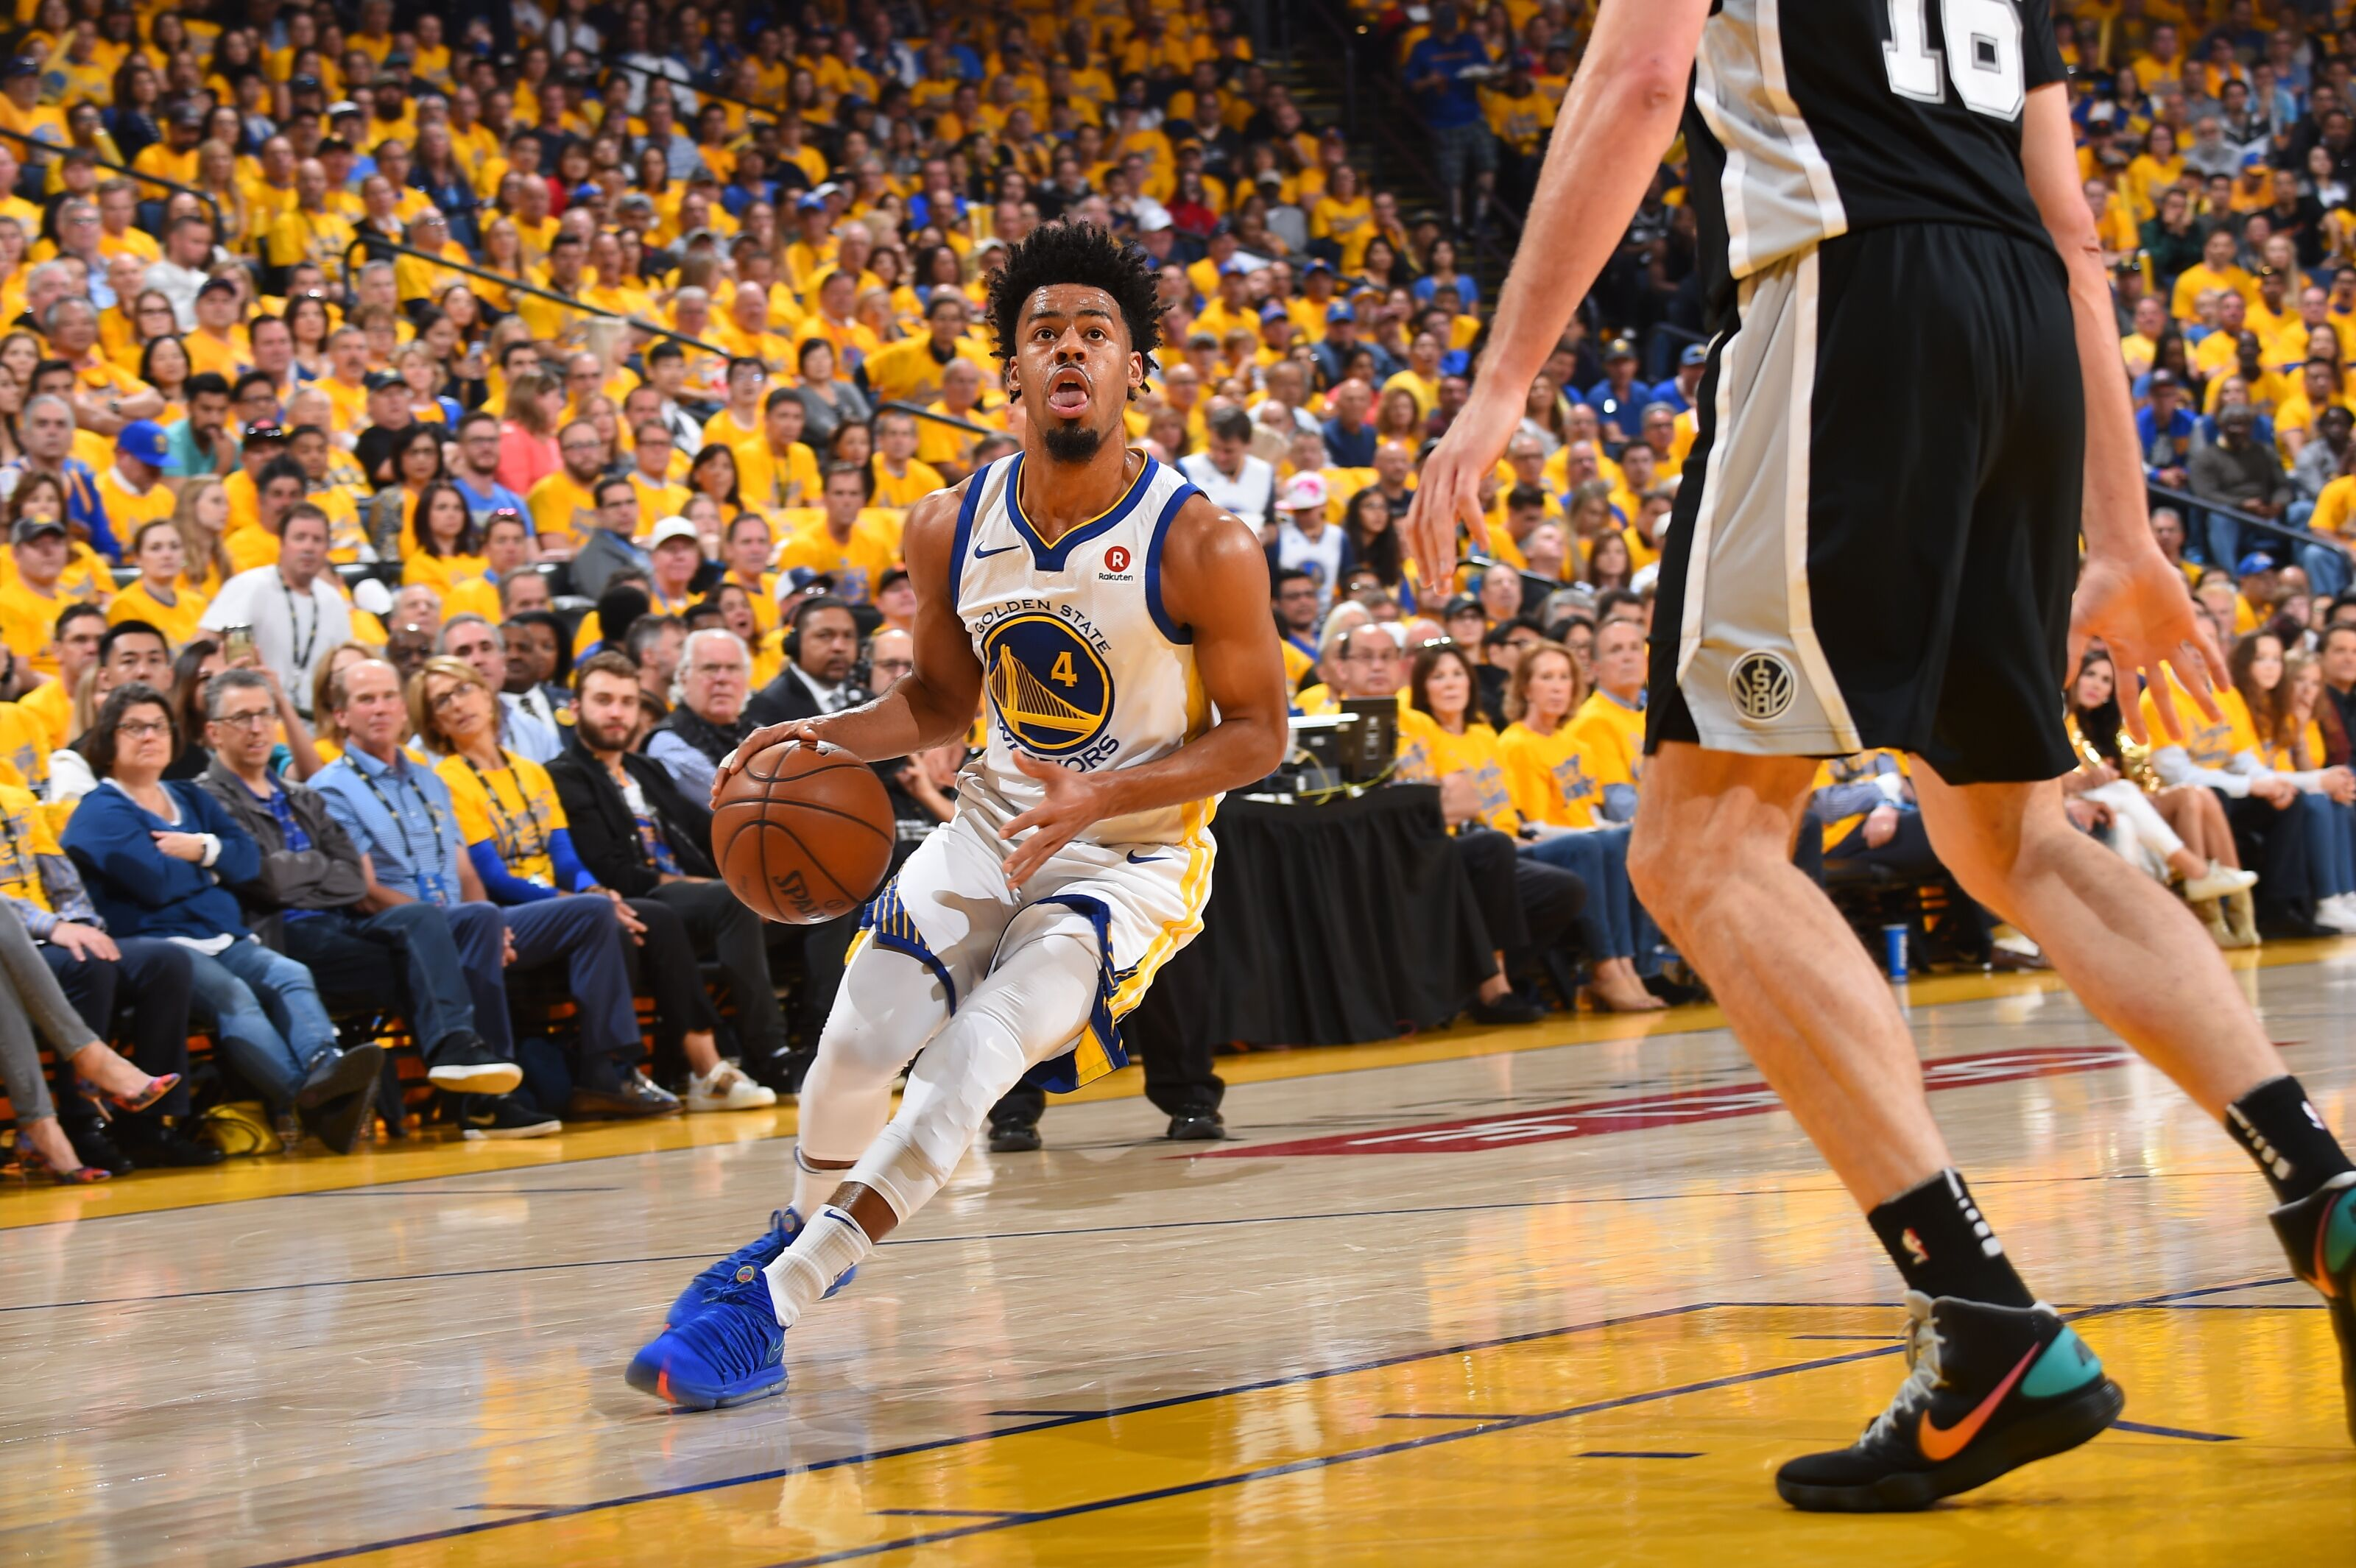 946288840-san-antonio-spurs-v-golden-state-warriors-game-one.jpg